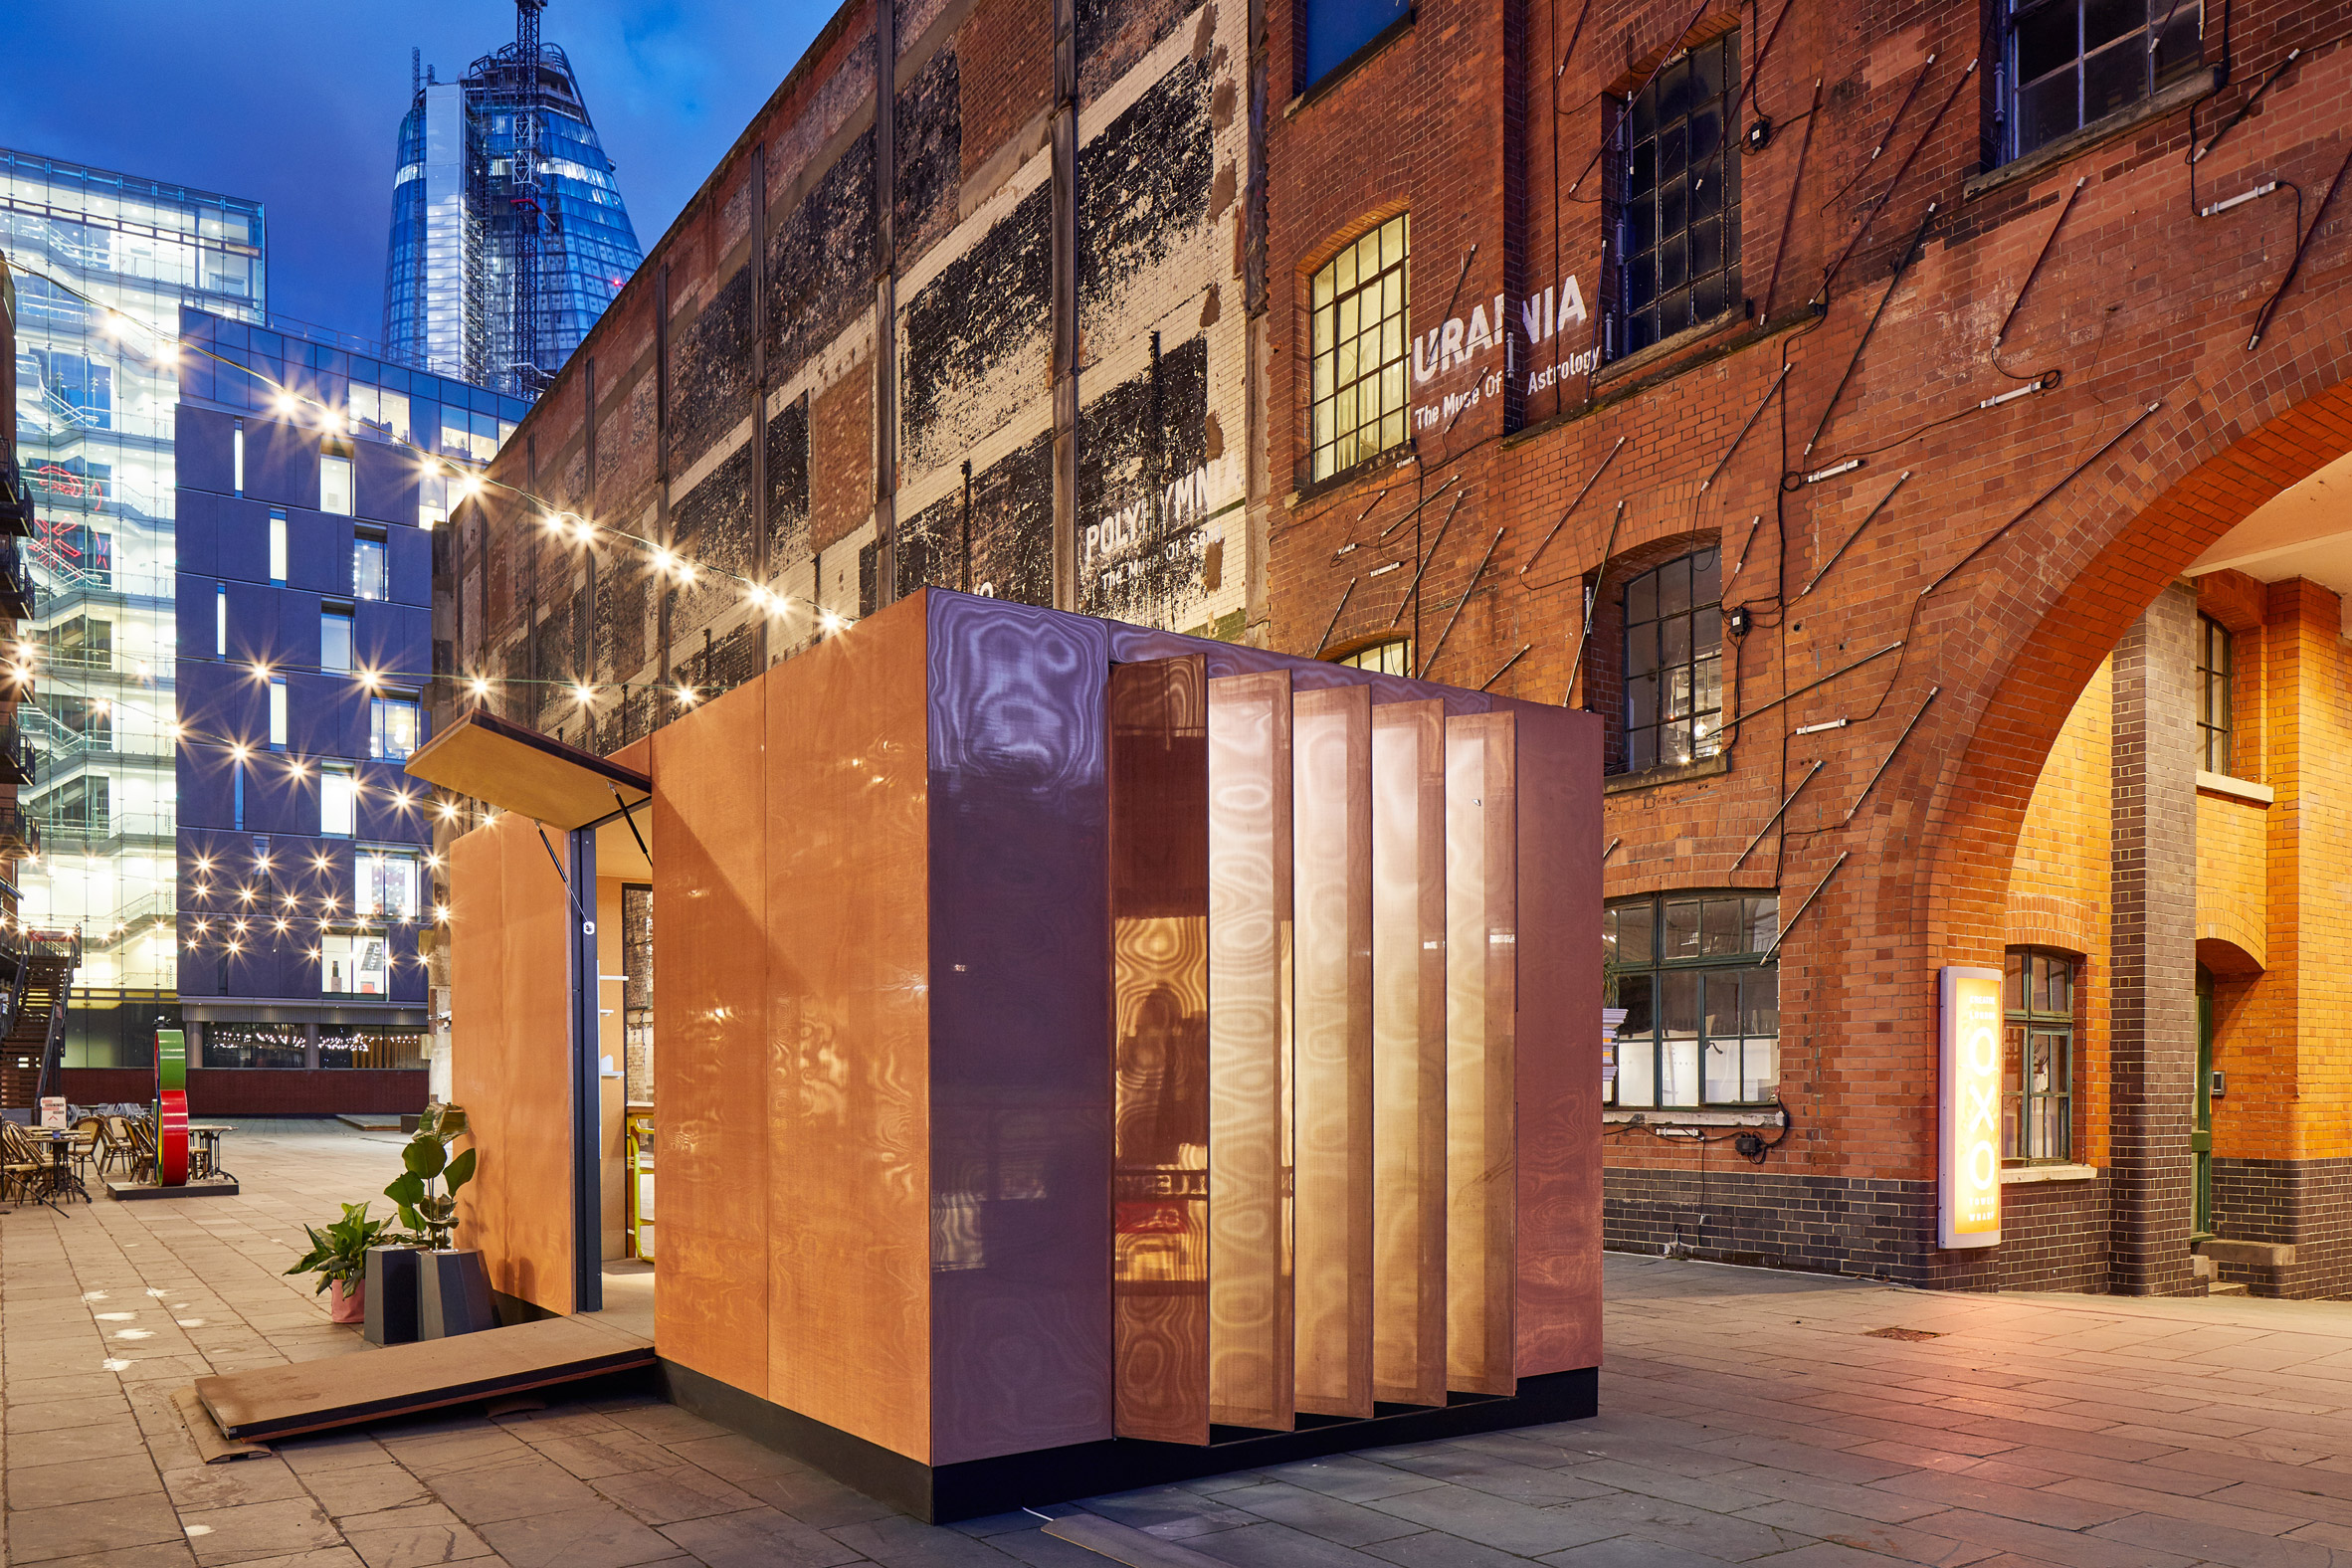 Sam Jacob and MINI team up to create micro home with attached library